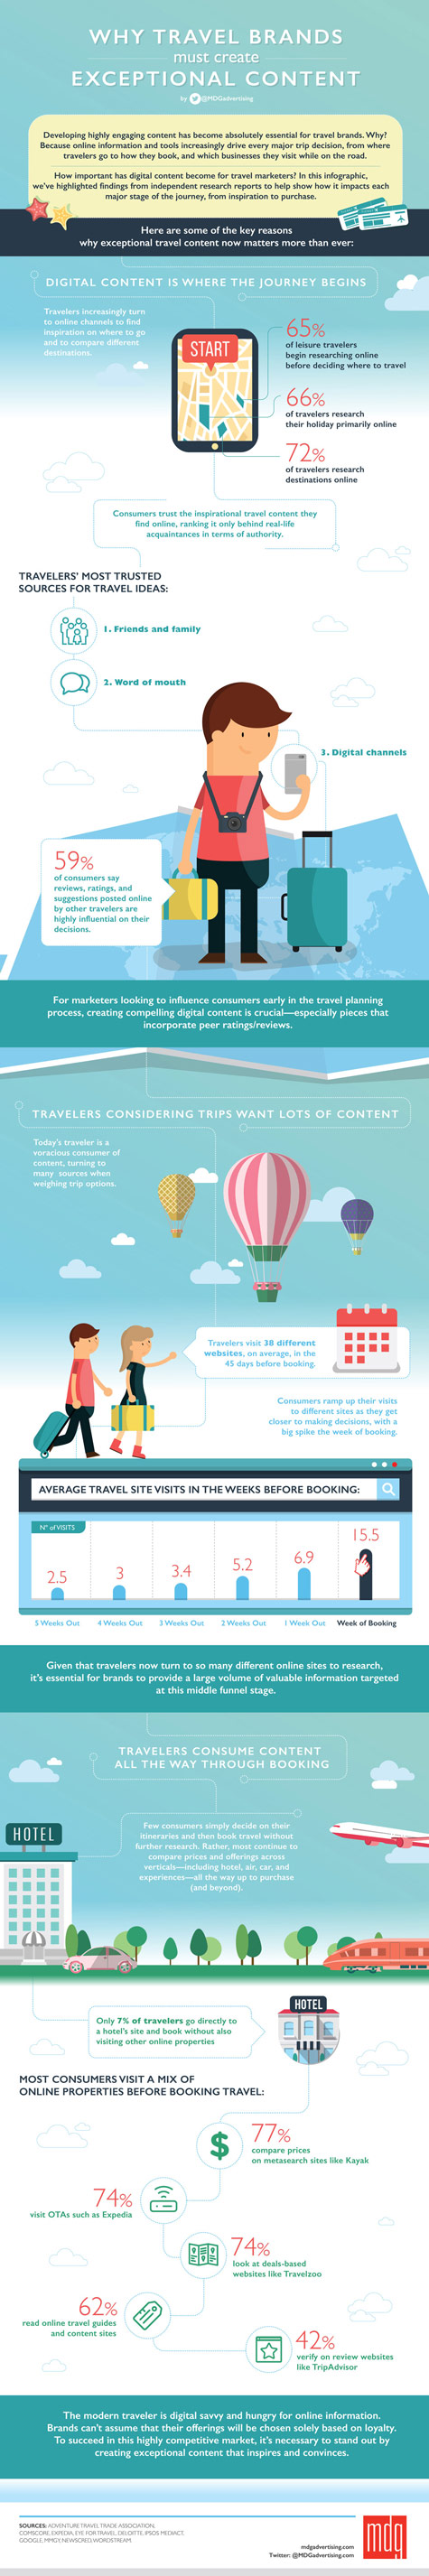 475 The 4 Keys to Creating Exceptional Travel Content in 2016 Infographic